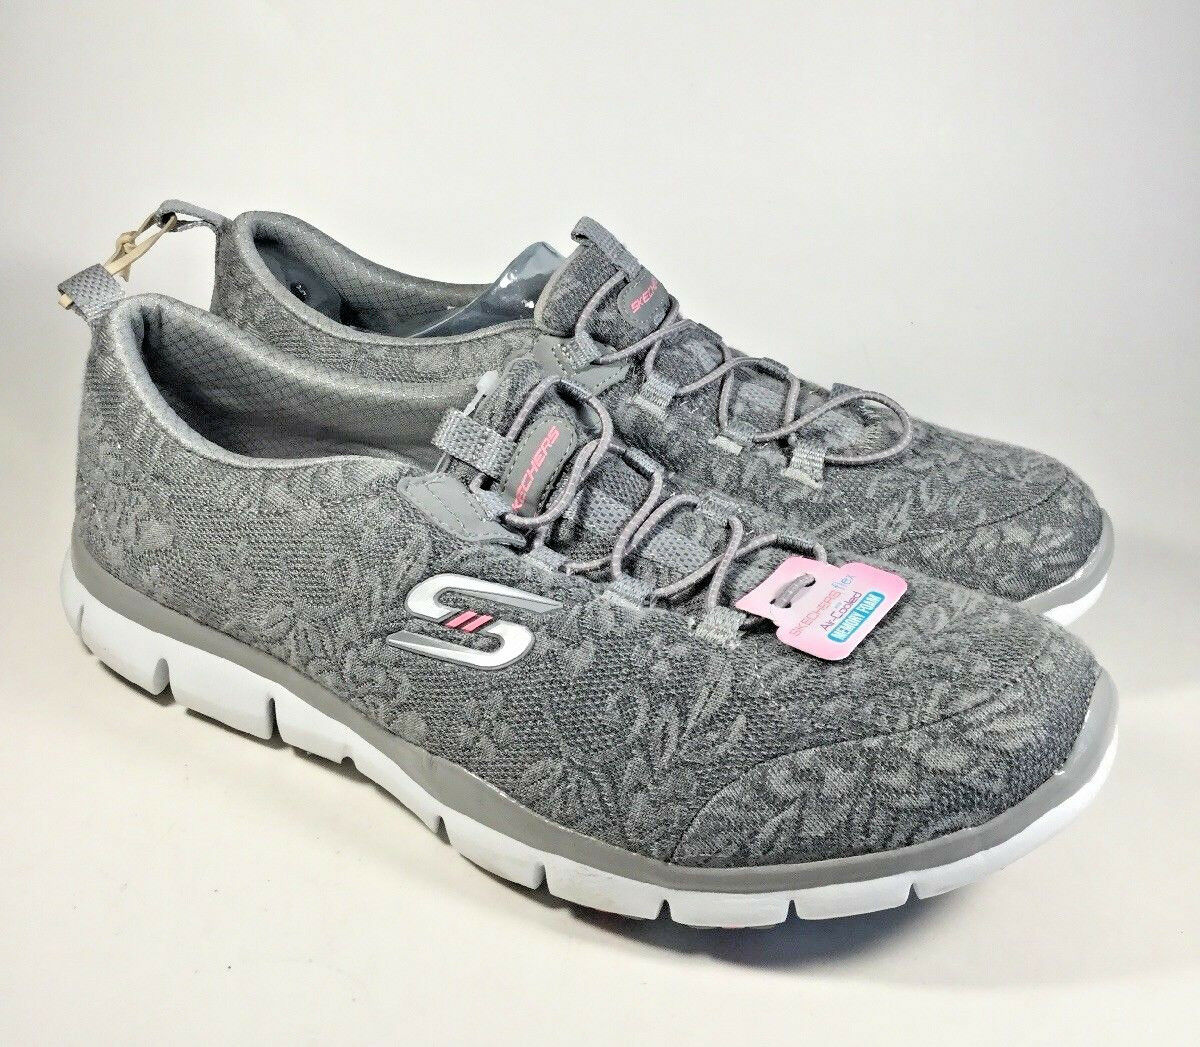 M3748L New w  Def. Women's Skechers Air-Cooled Memory Foam Flex US 10 M